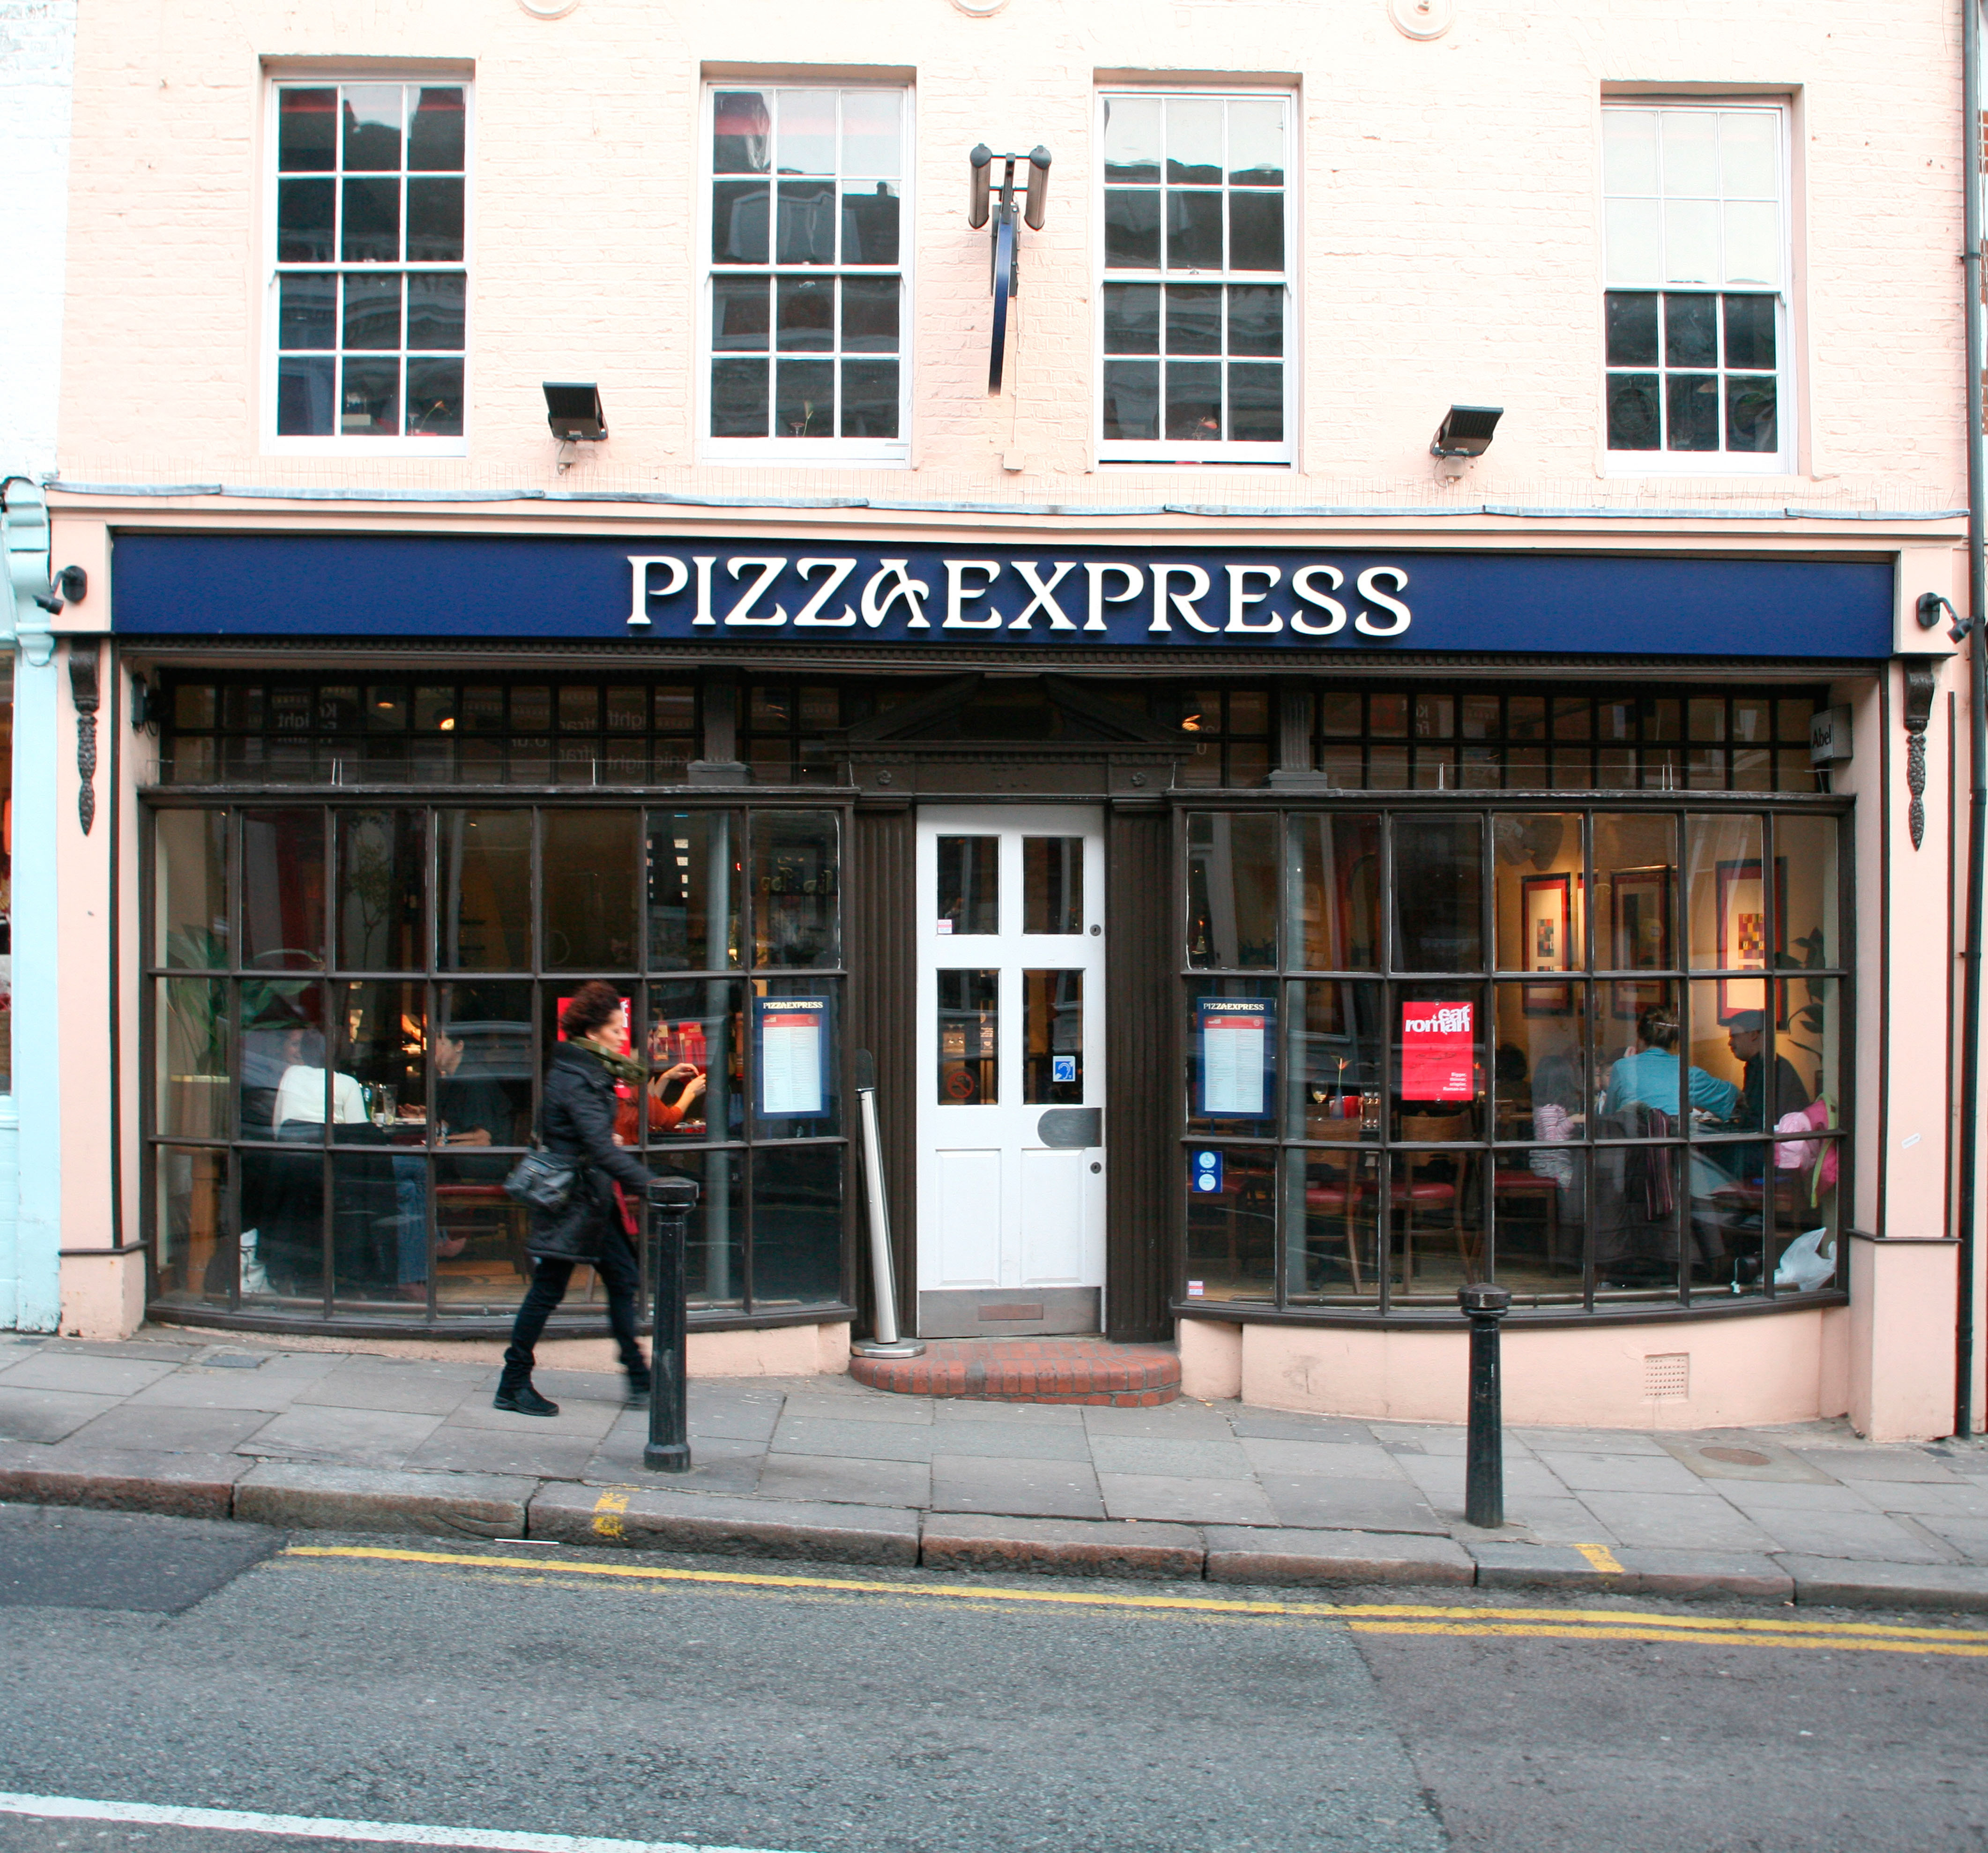 Pizza Express isn't planning to reopen until July 9